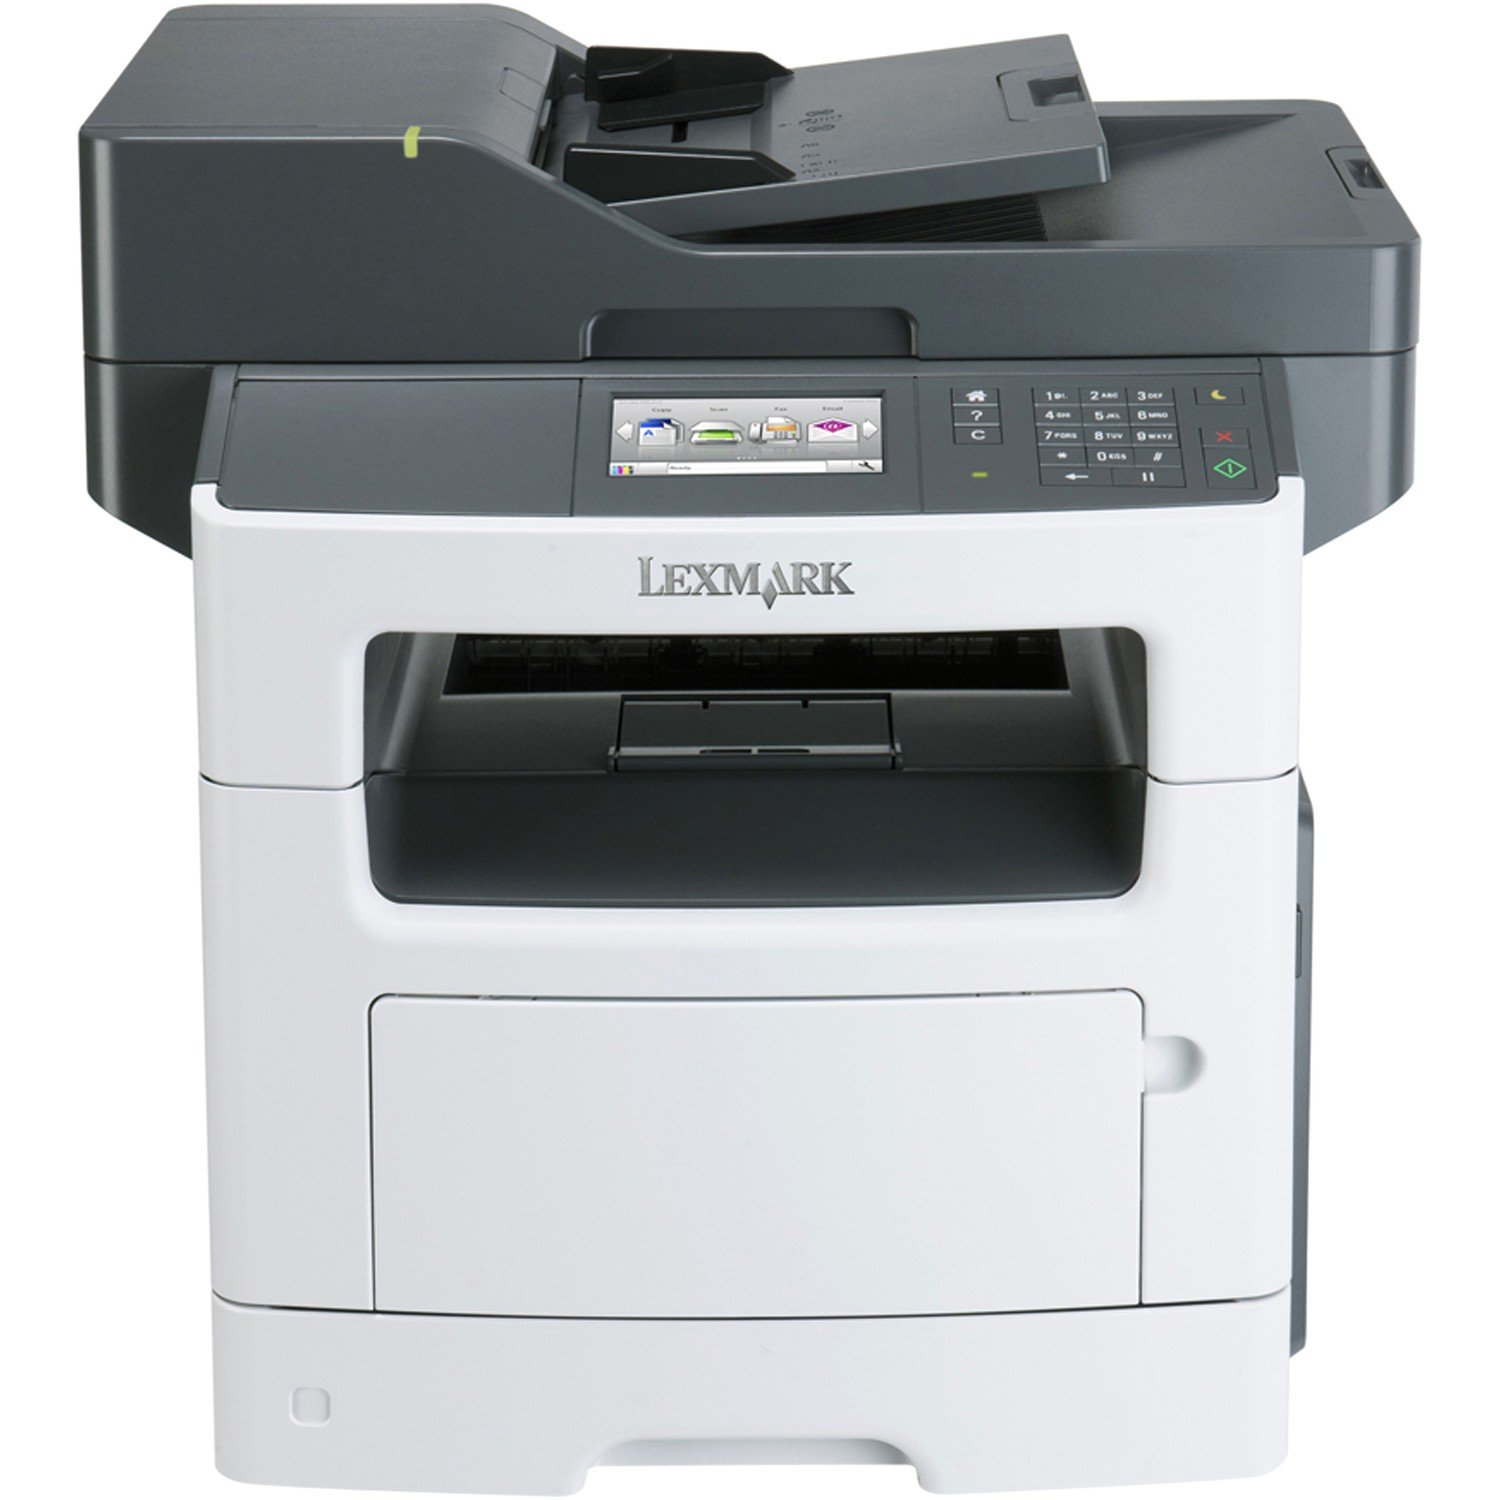 Amazon.com: Lexmark MX511de Monochrome All-In One Laser Printer, Scan,  Copy, Network Ready, Duplex Printing and Professional Features: Office  Products